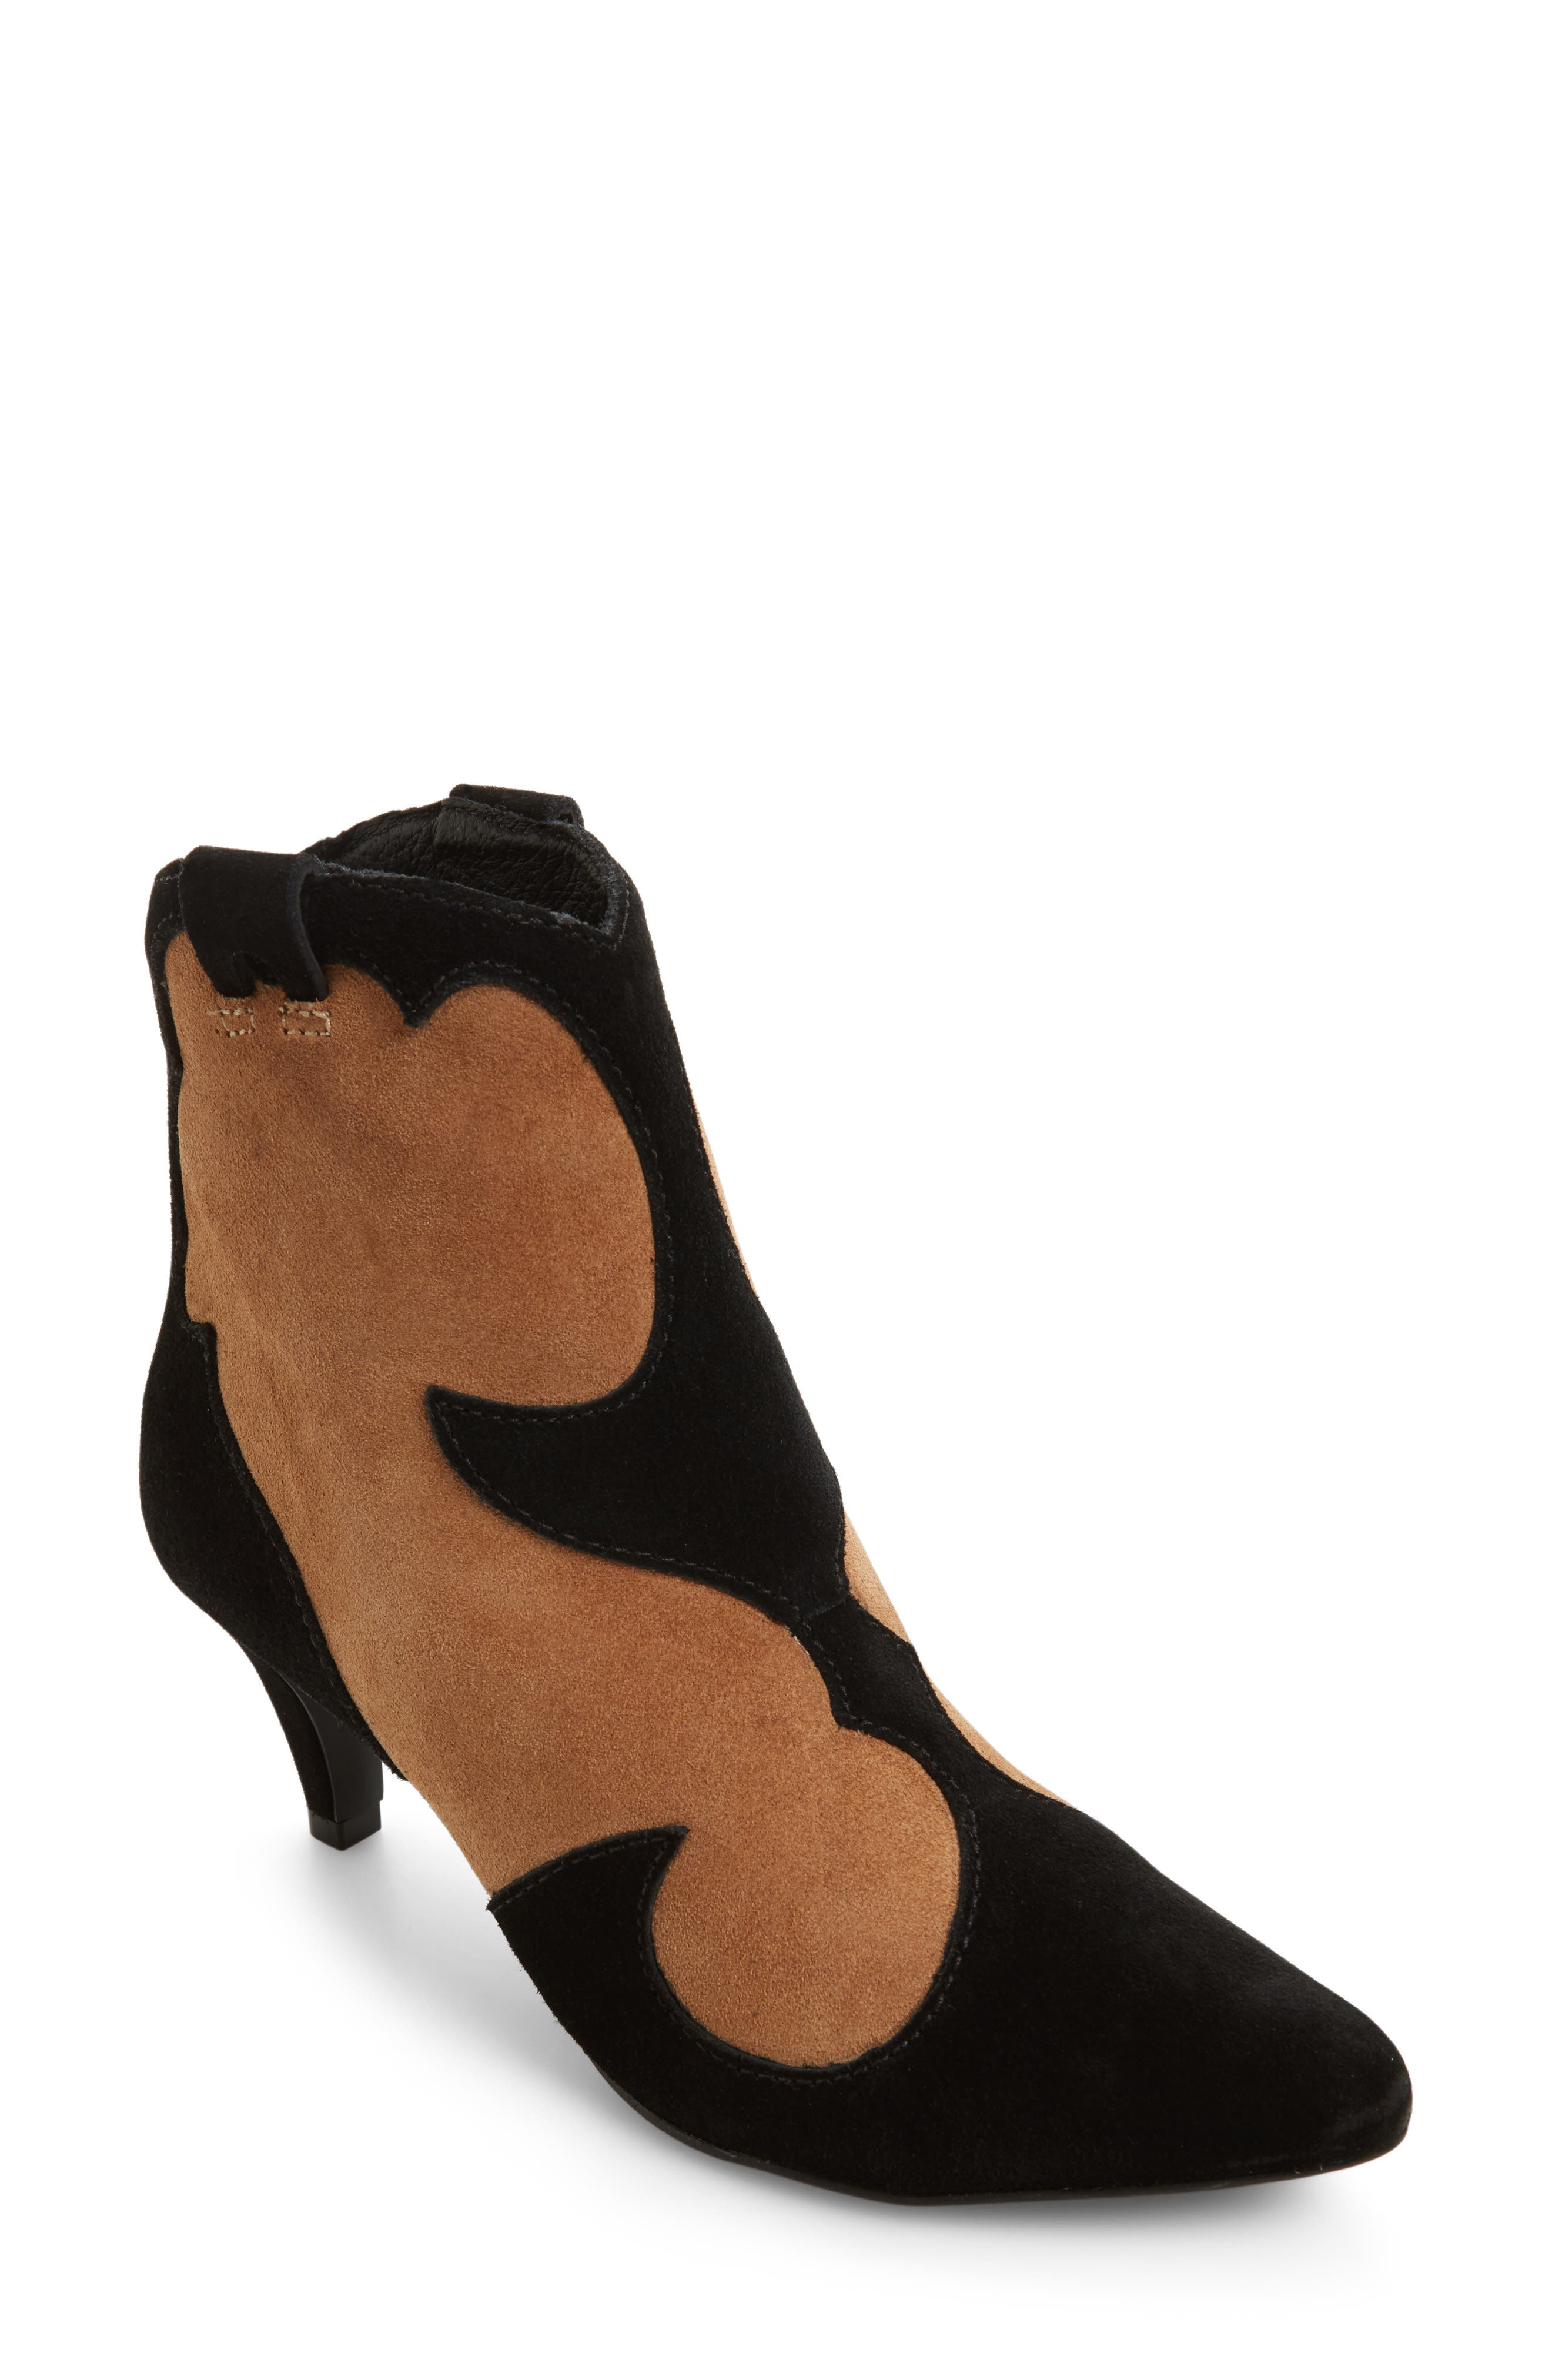 Majesty Two-Tone Bootie,                         Main,                         color, 001